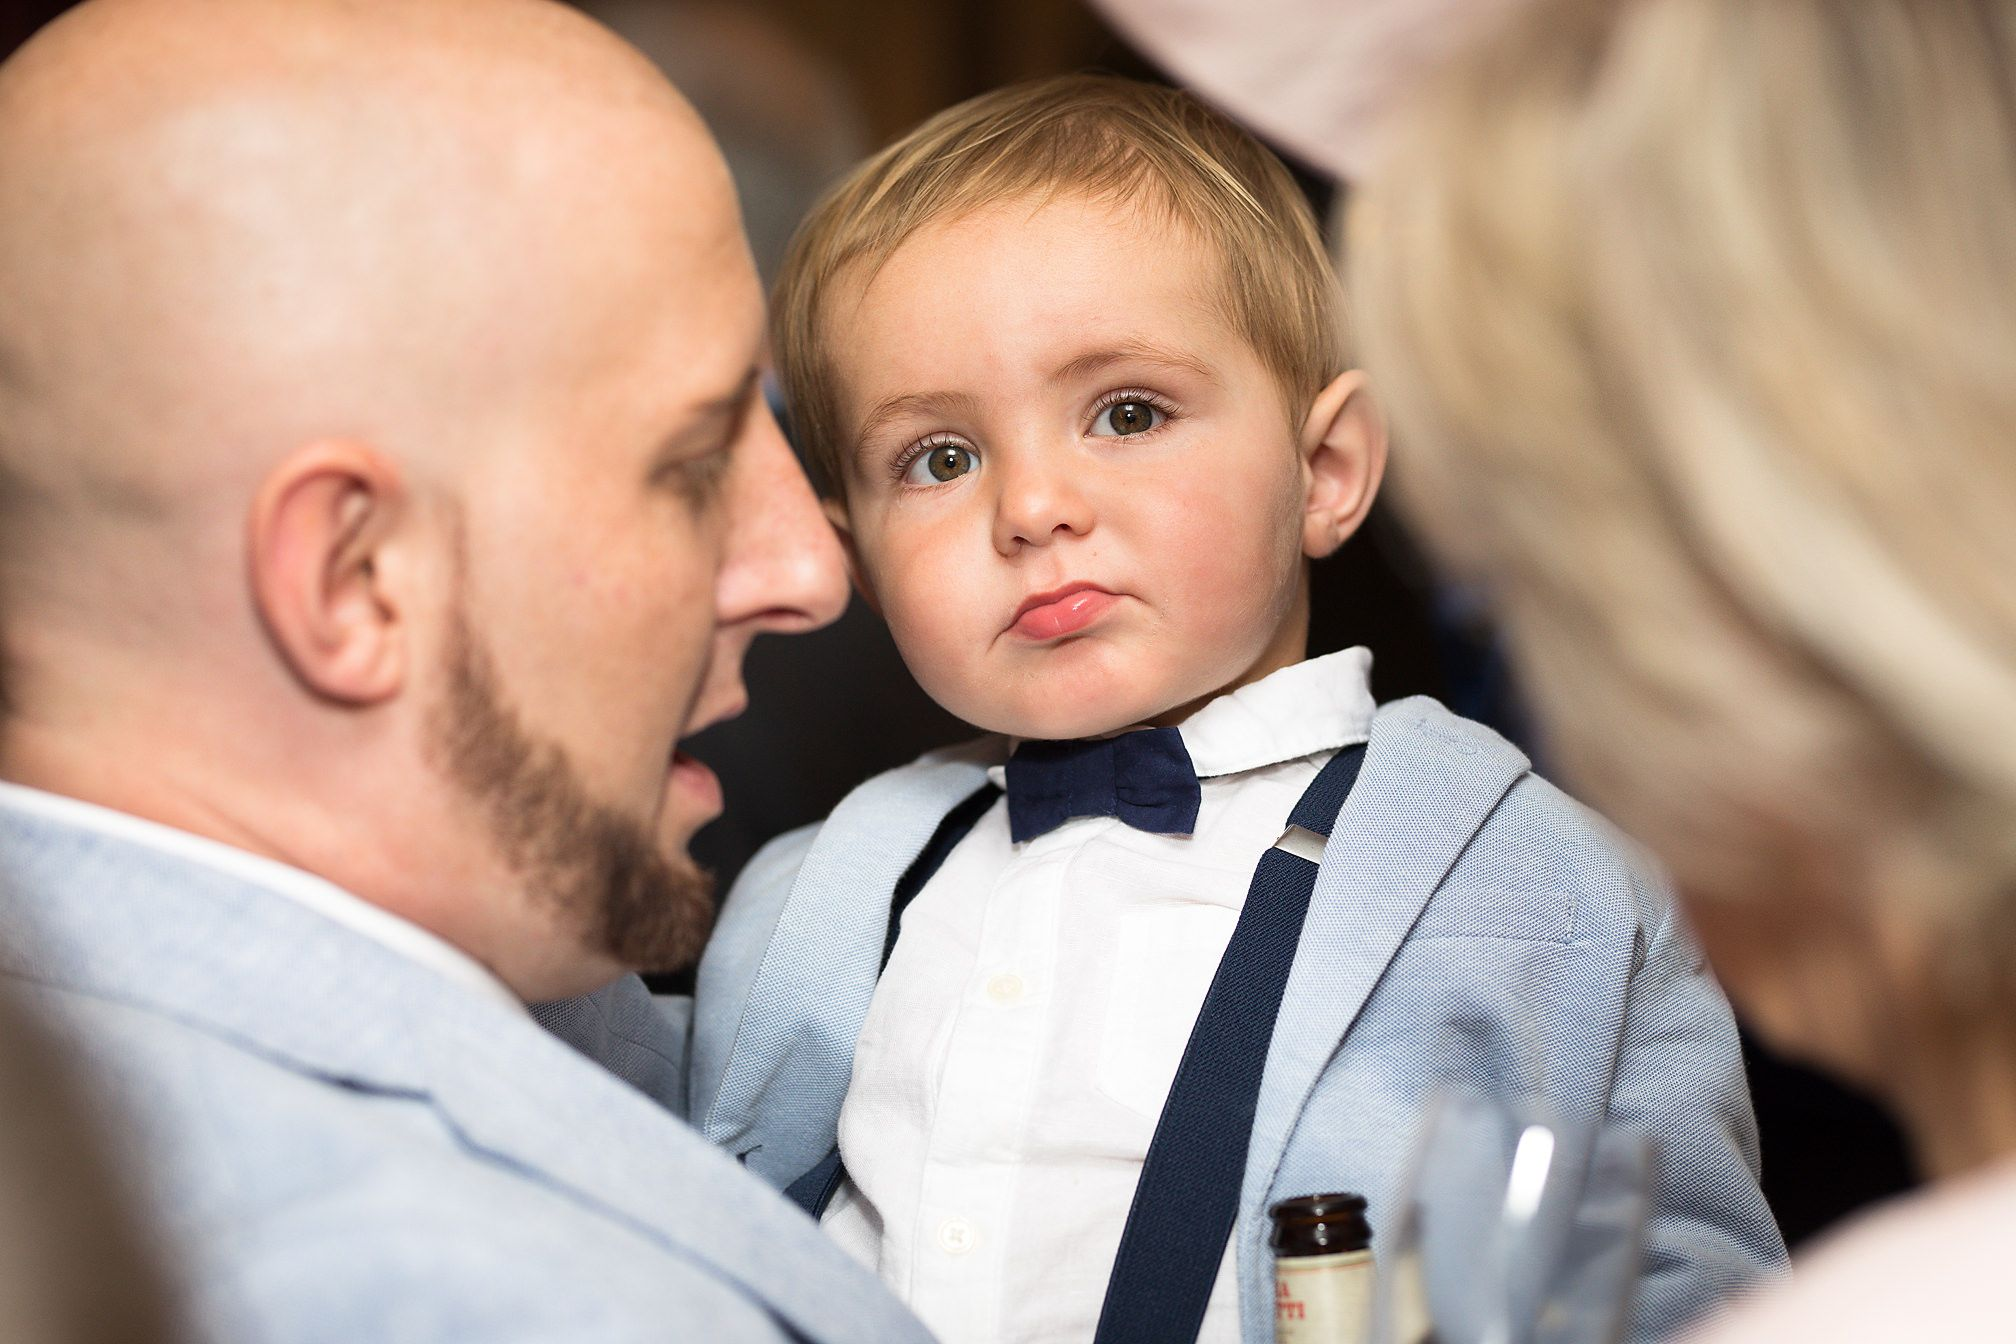 Little boy wedding guest is hugged and adored by his parents